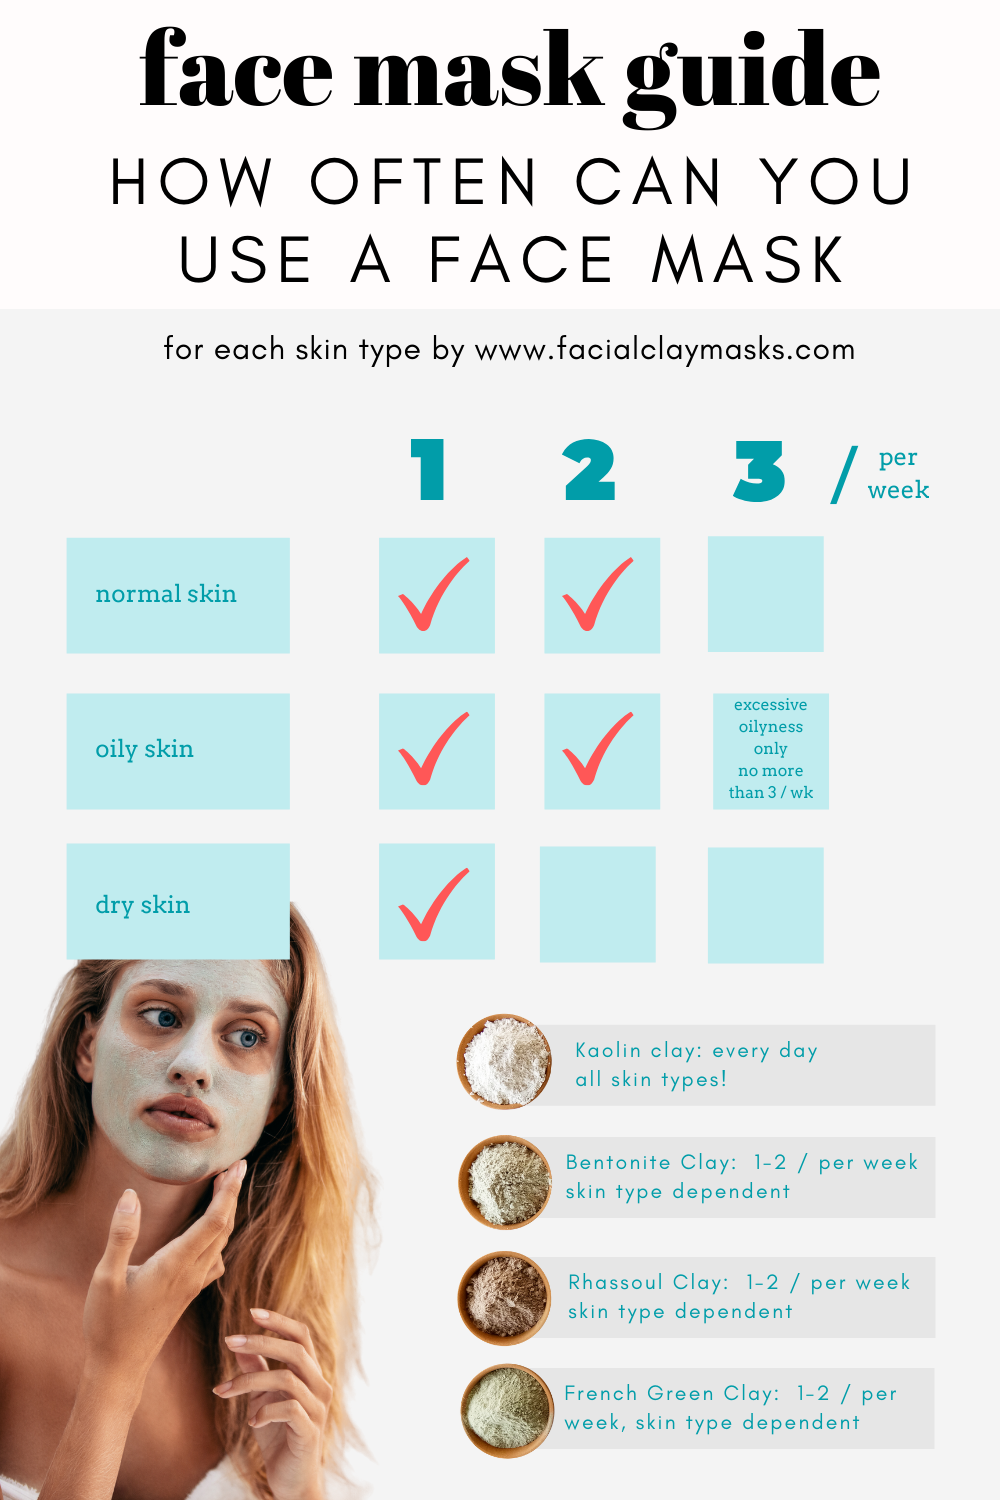 Can you use a clay mask everyday? 2